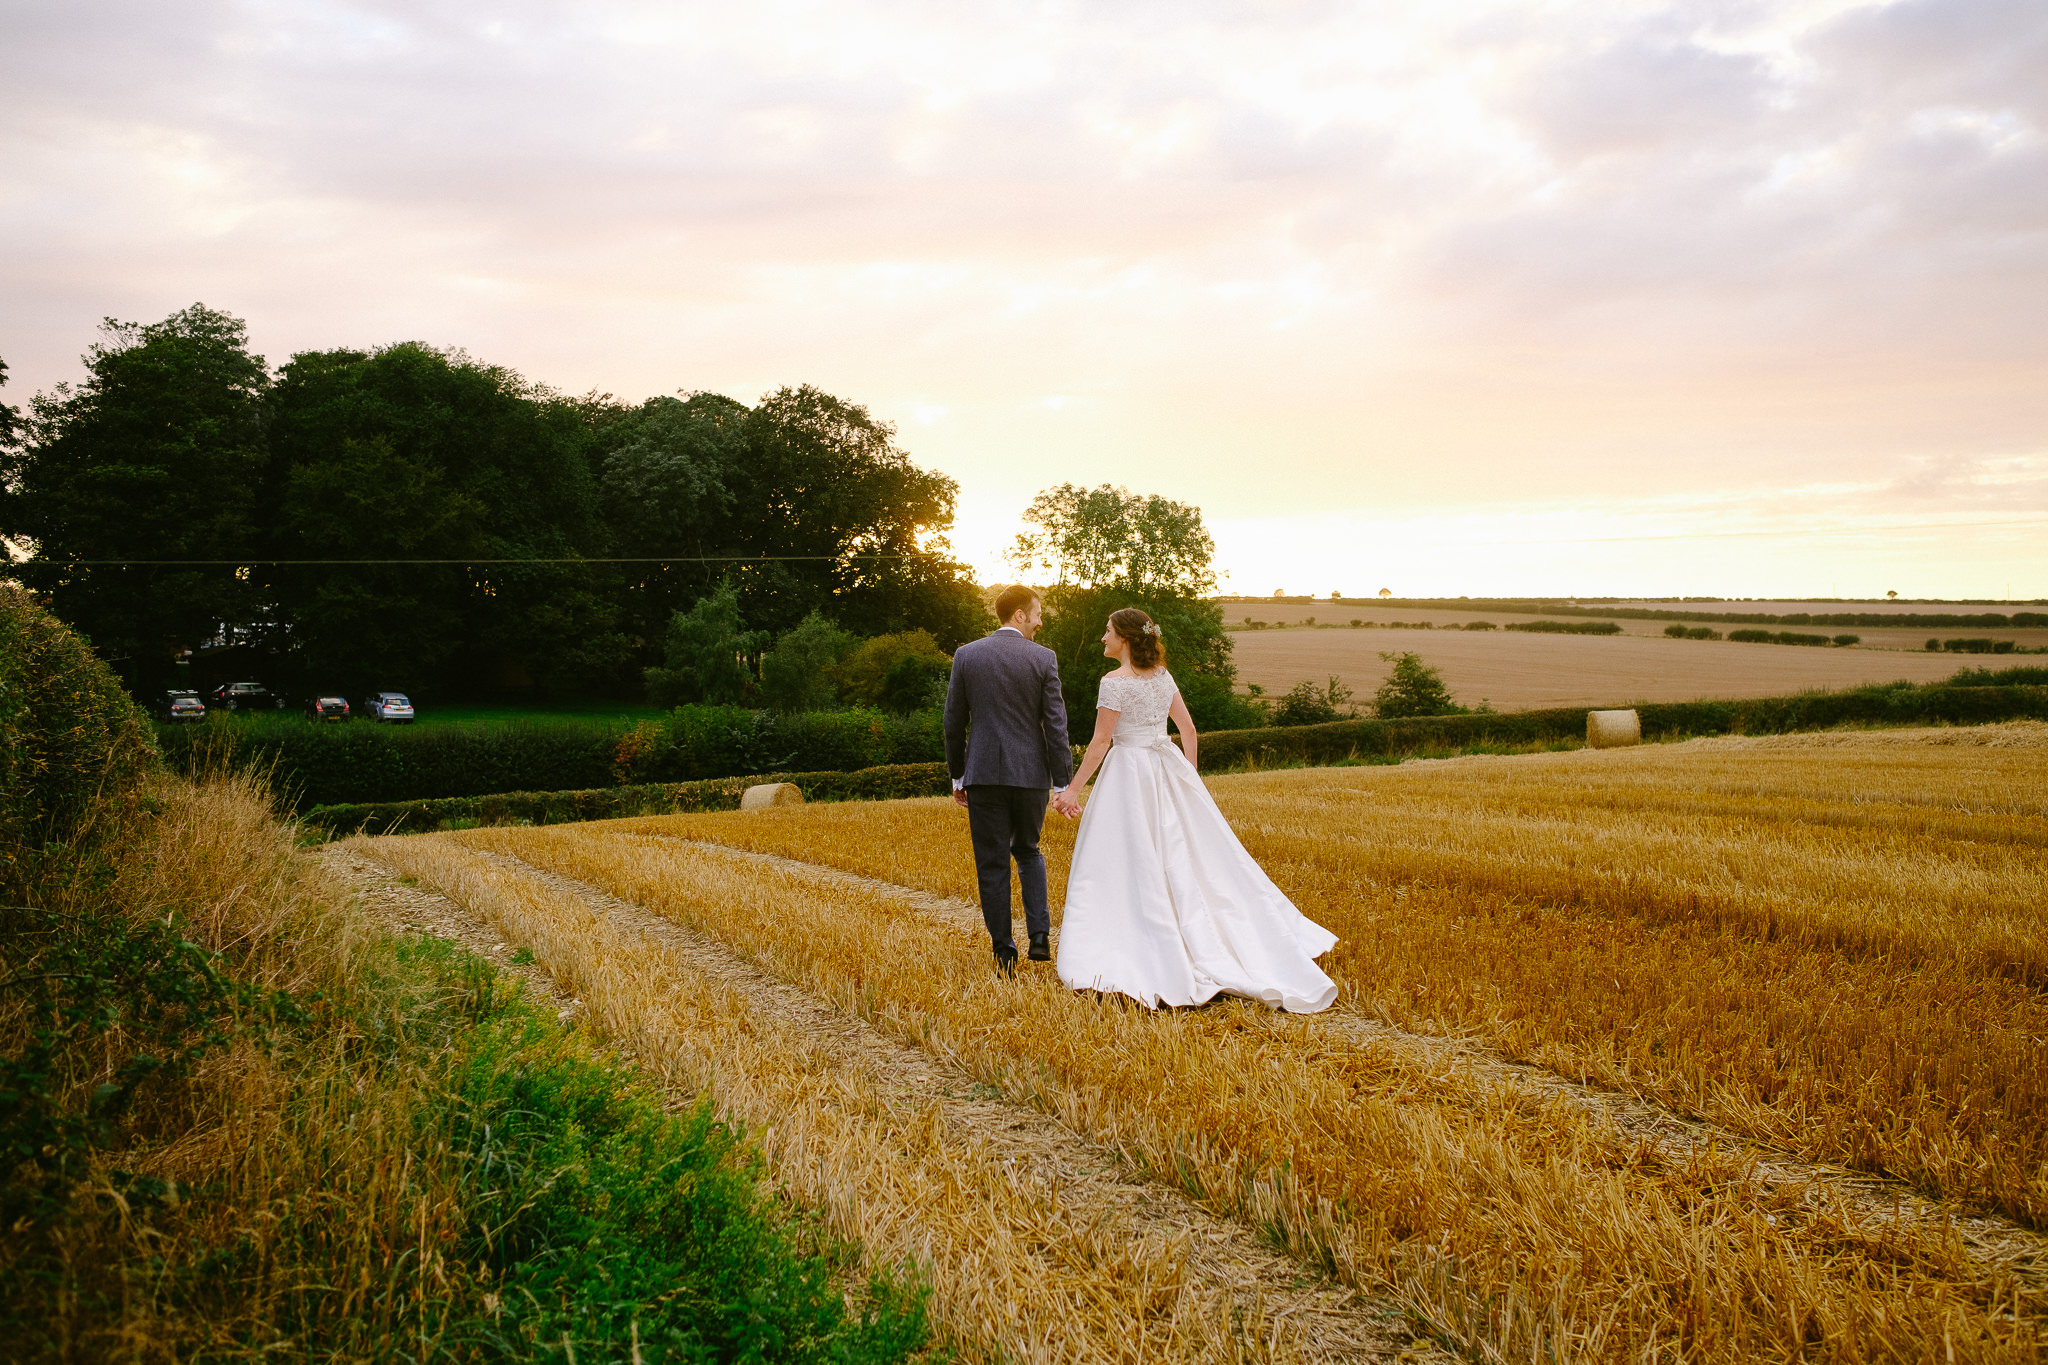 Bride and groom walk through a wheat field in Yorkshire